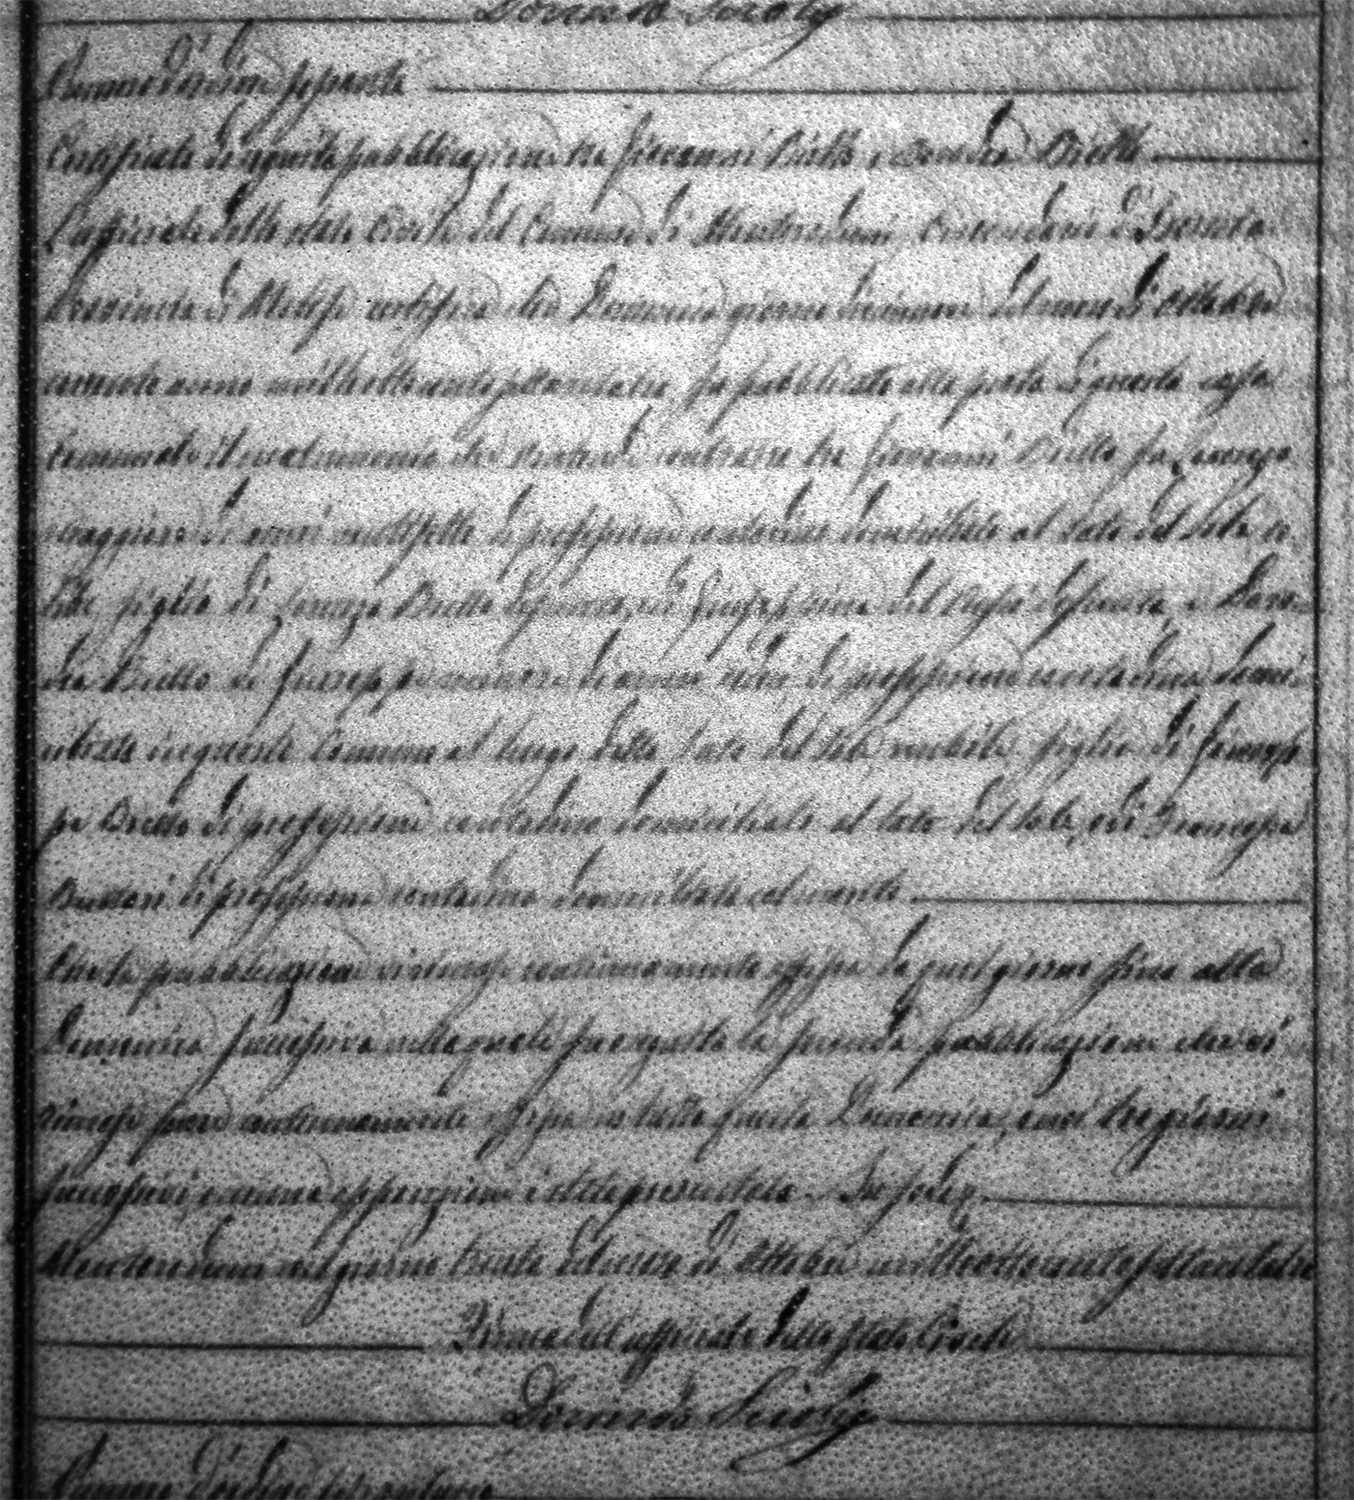 1873-Giovanni-Biello-and-Dorodea-Biello-Marriage-Bann-03.jpg